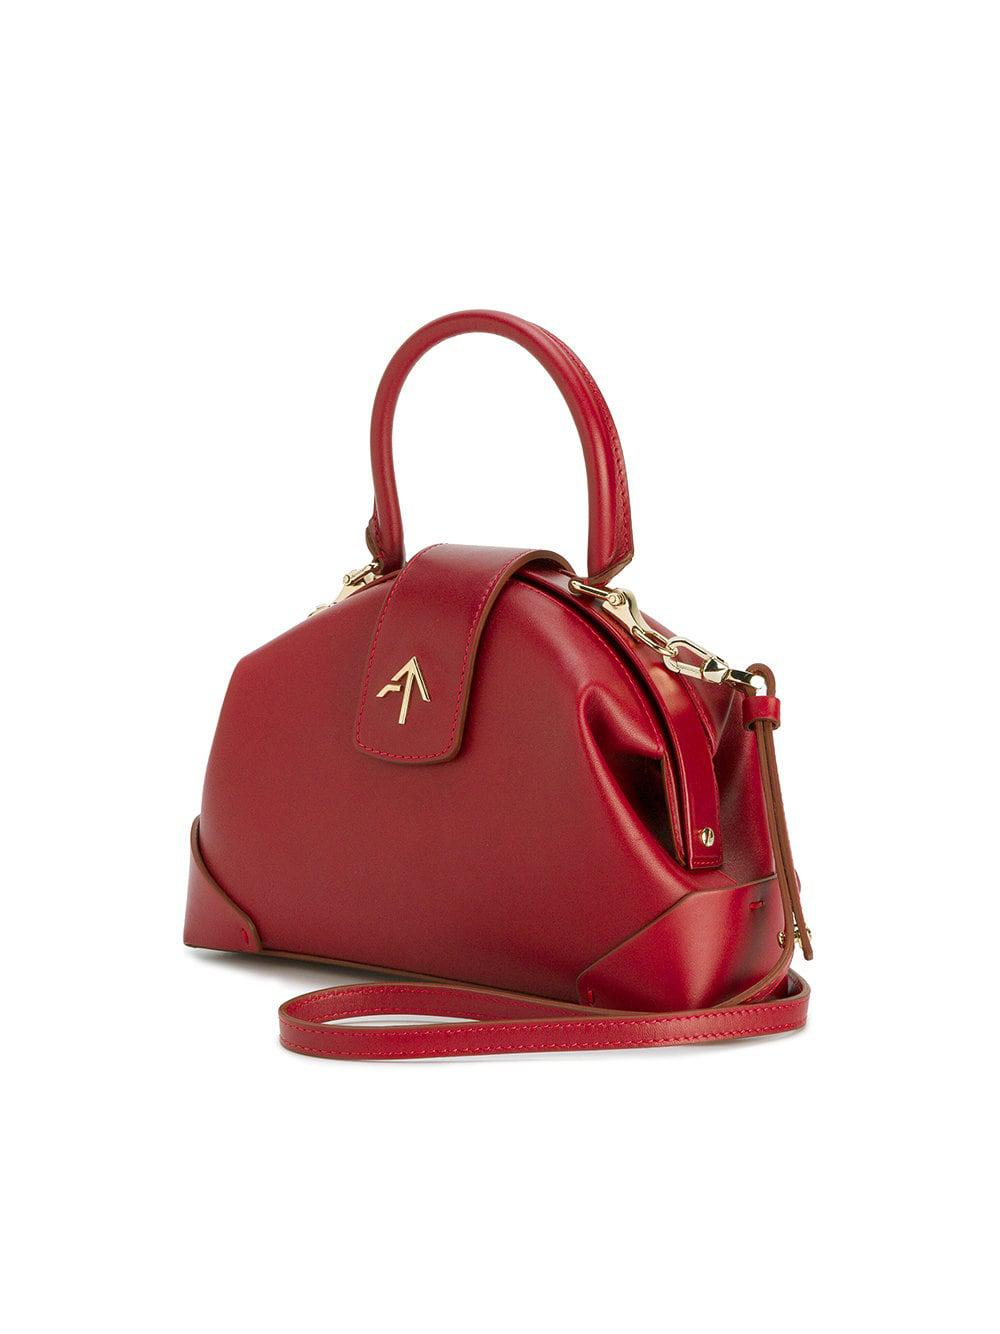 MANU Atelier Leather Arrow Pin Tote Bag in Red